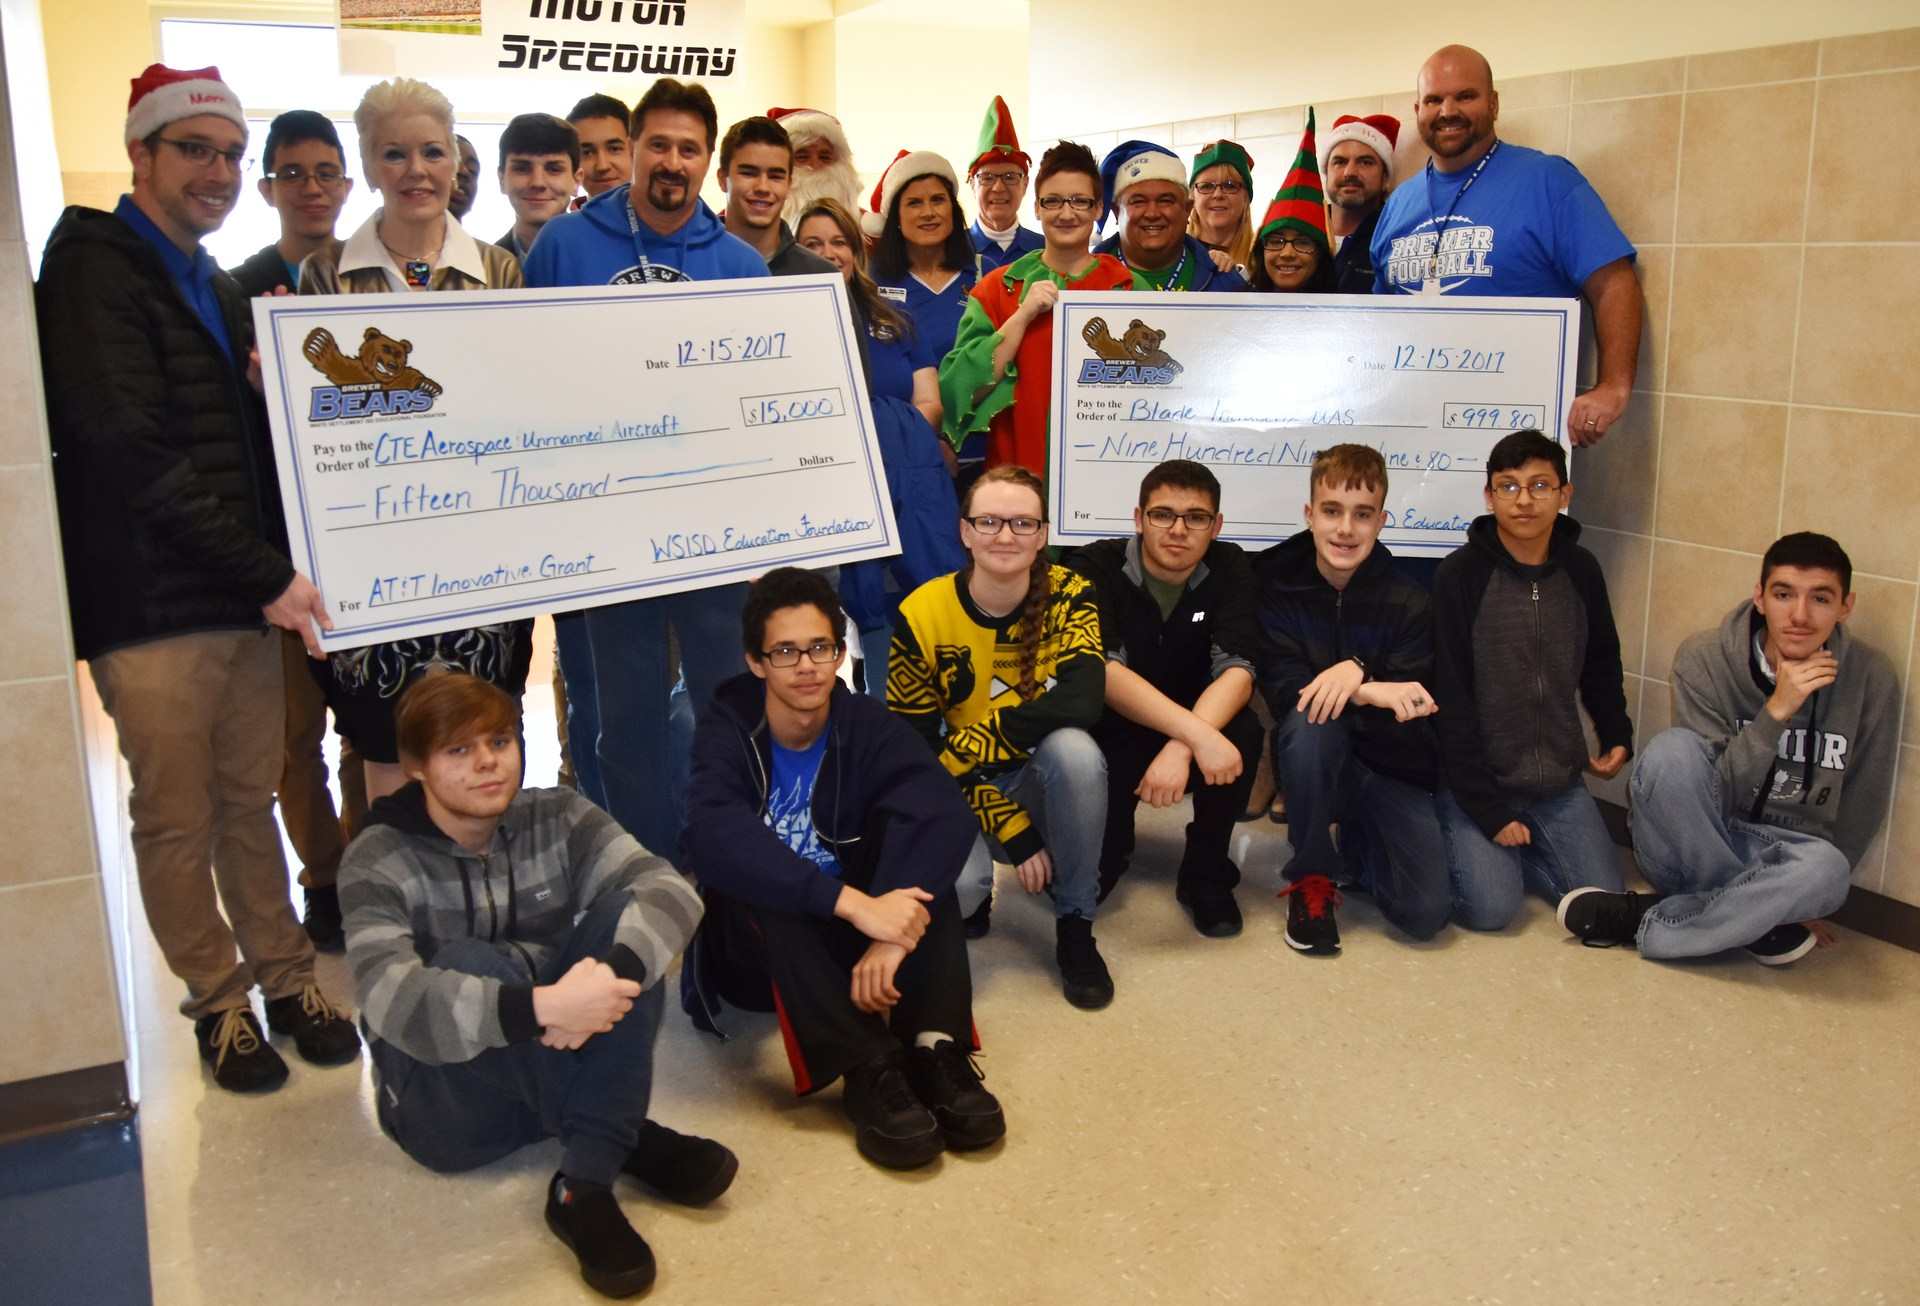 AT&T awarded a $25,000 grant to fund STEM grants at Brewer High School.